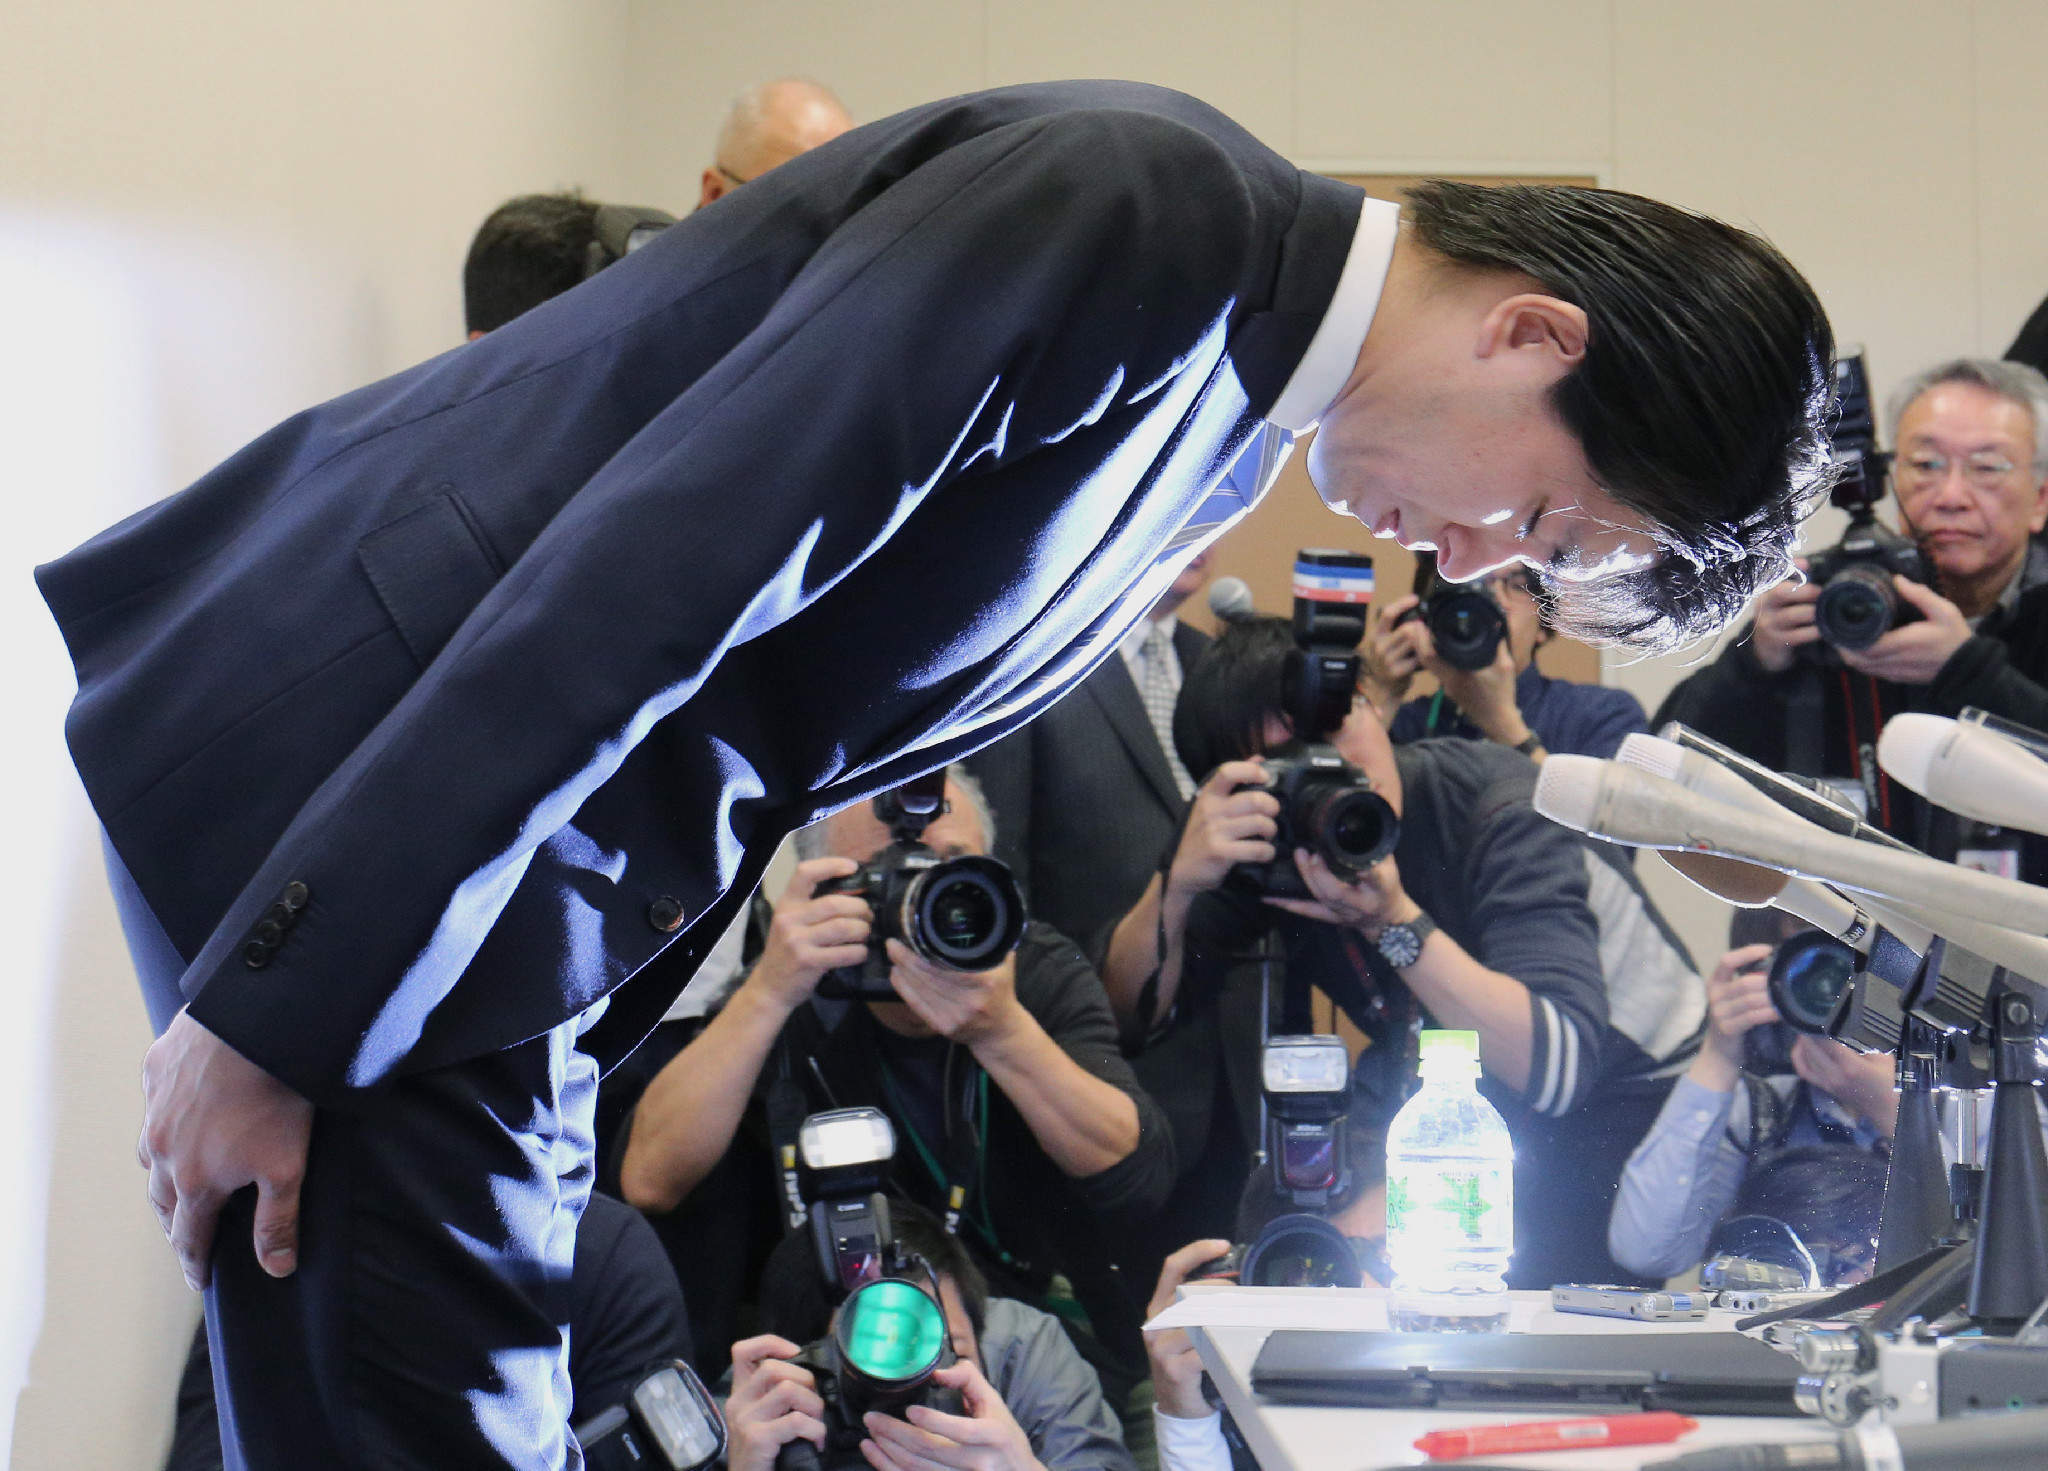 A tale of three scandals: behind the headlines in Japan